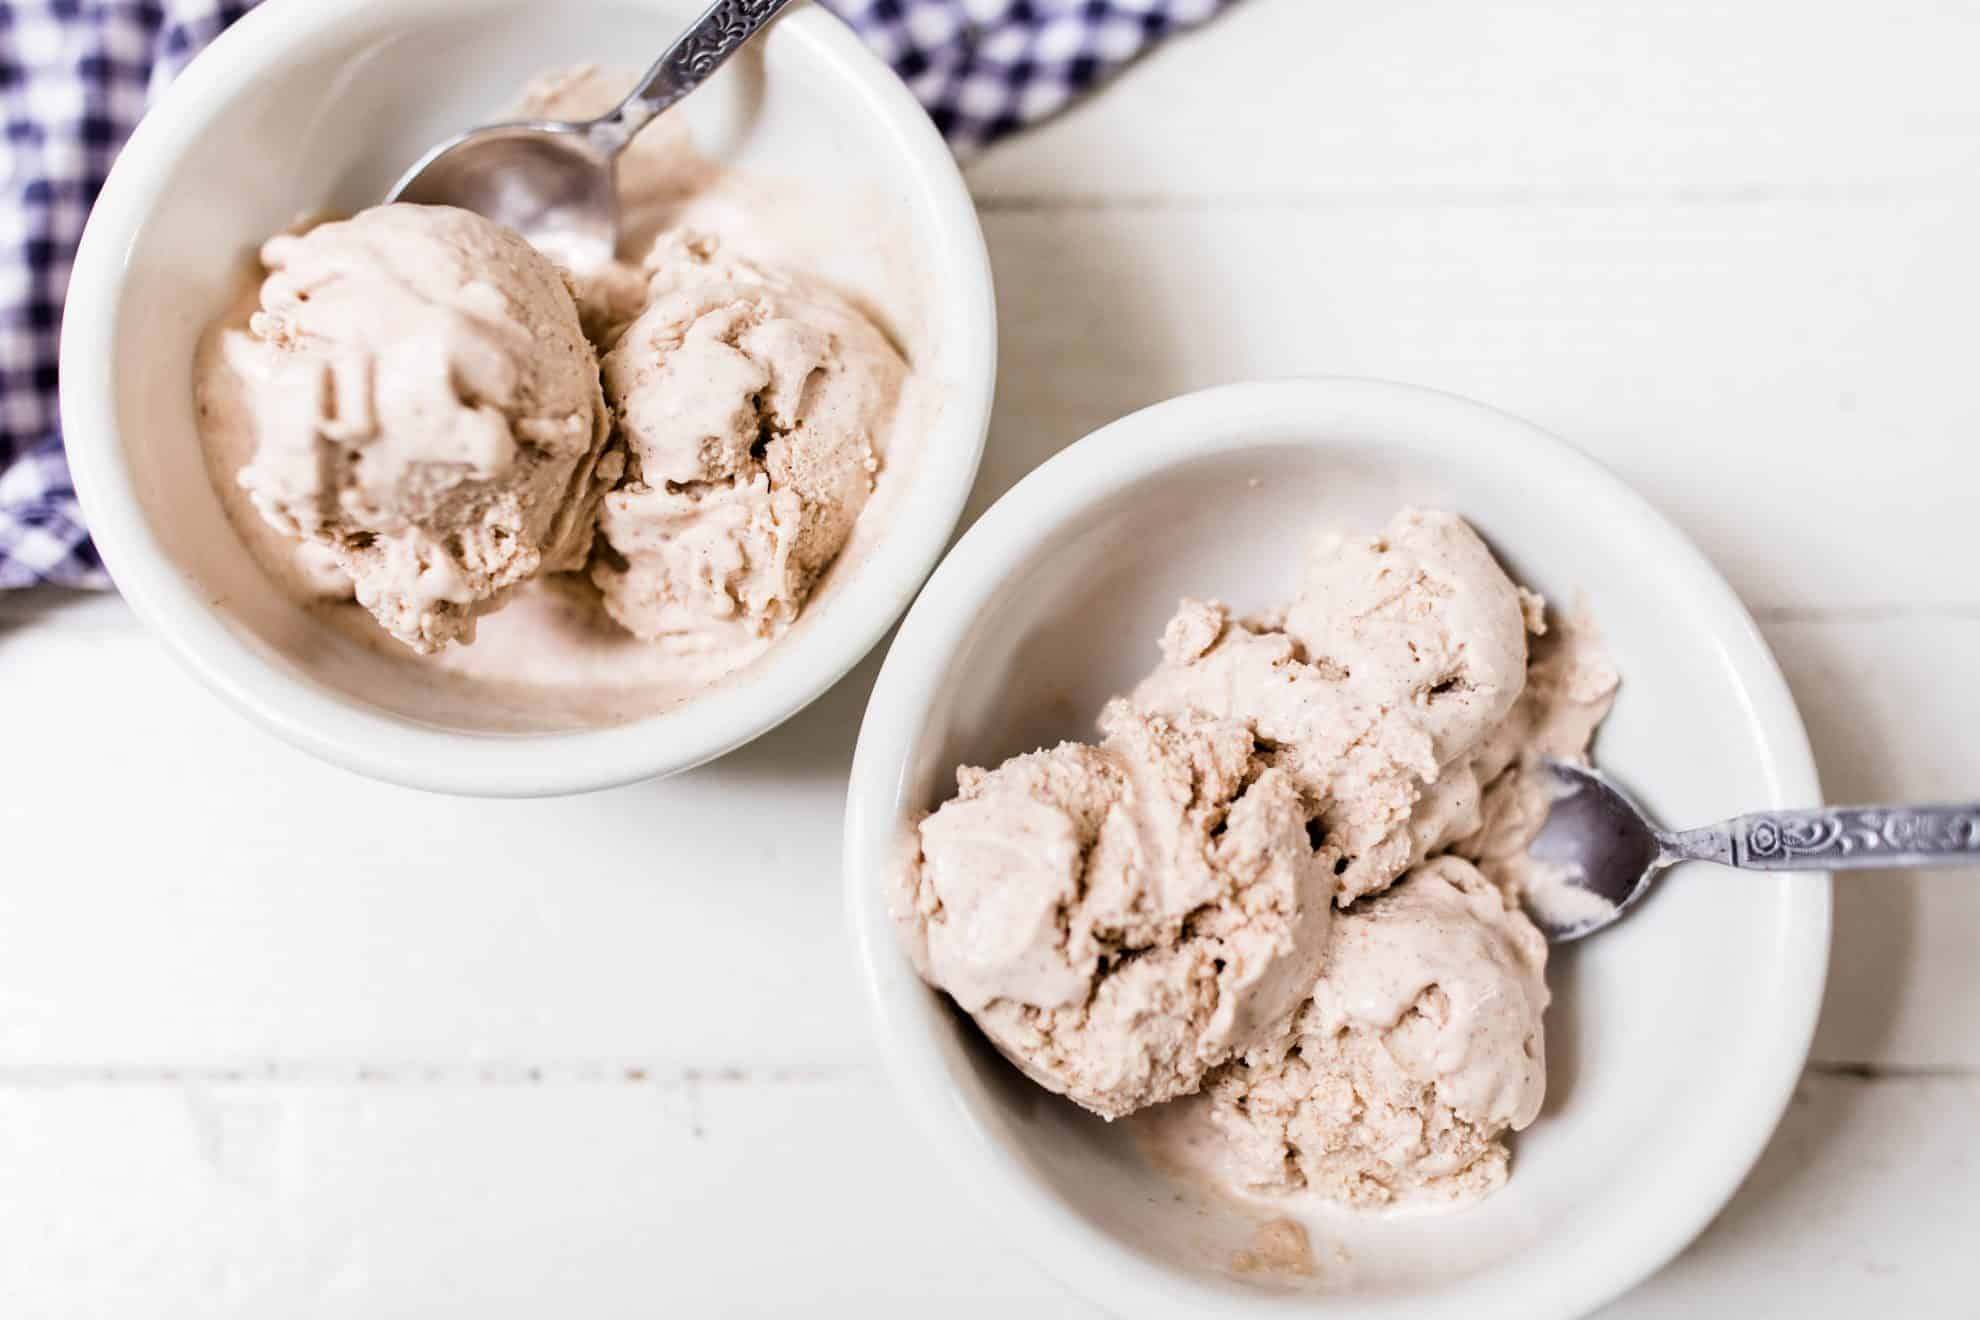 two bowls of pumpkin spice icecream on a white countertop with blue and white towel